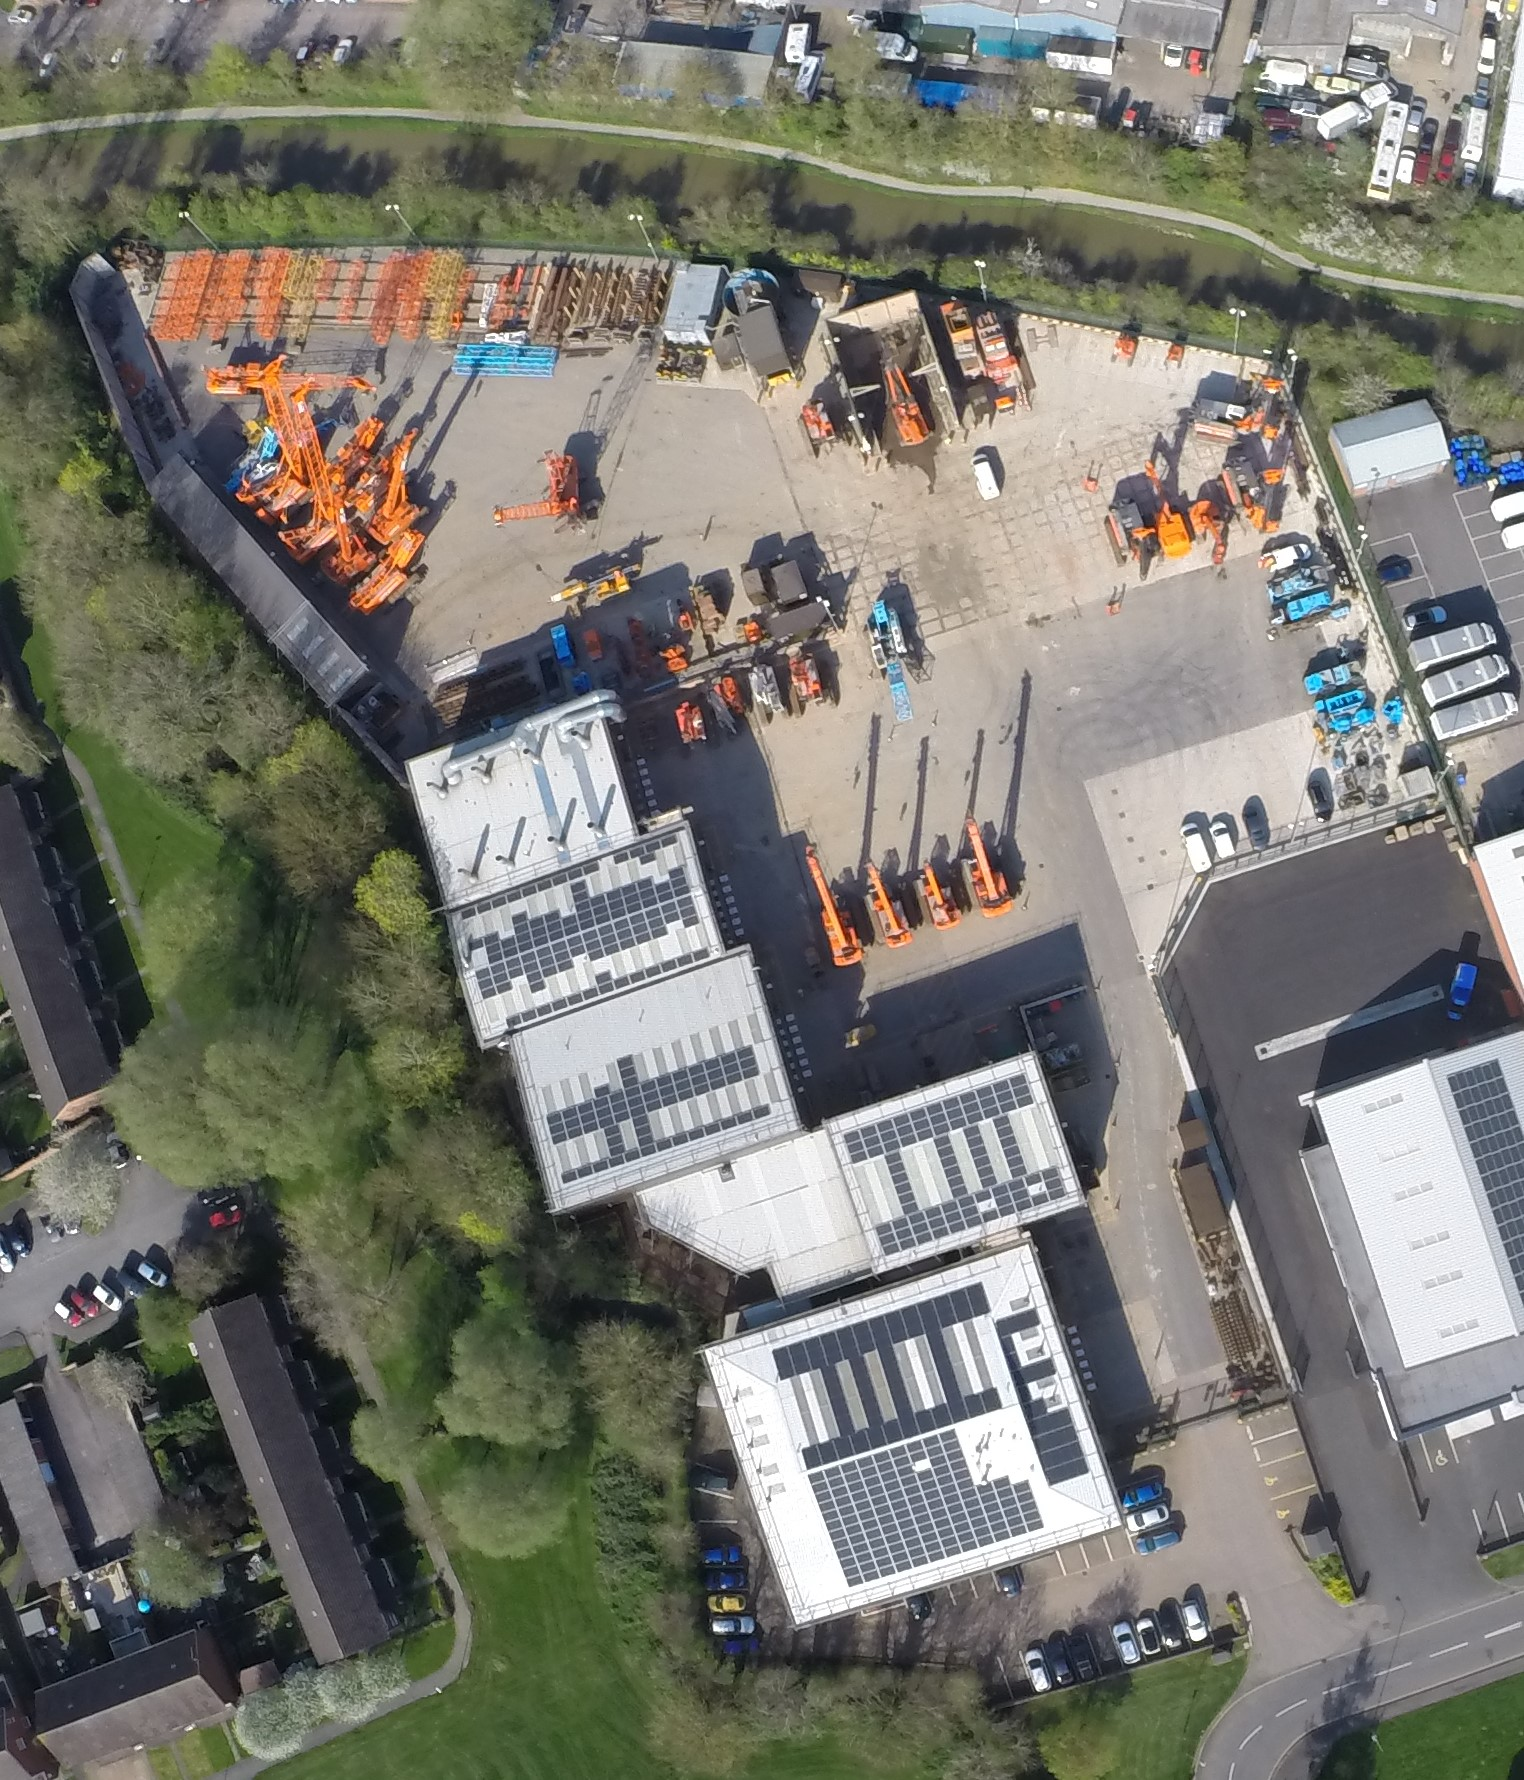 AGD Equipment's premises from above